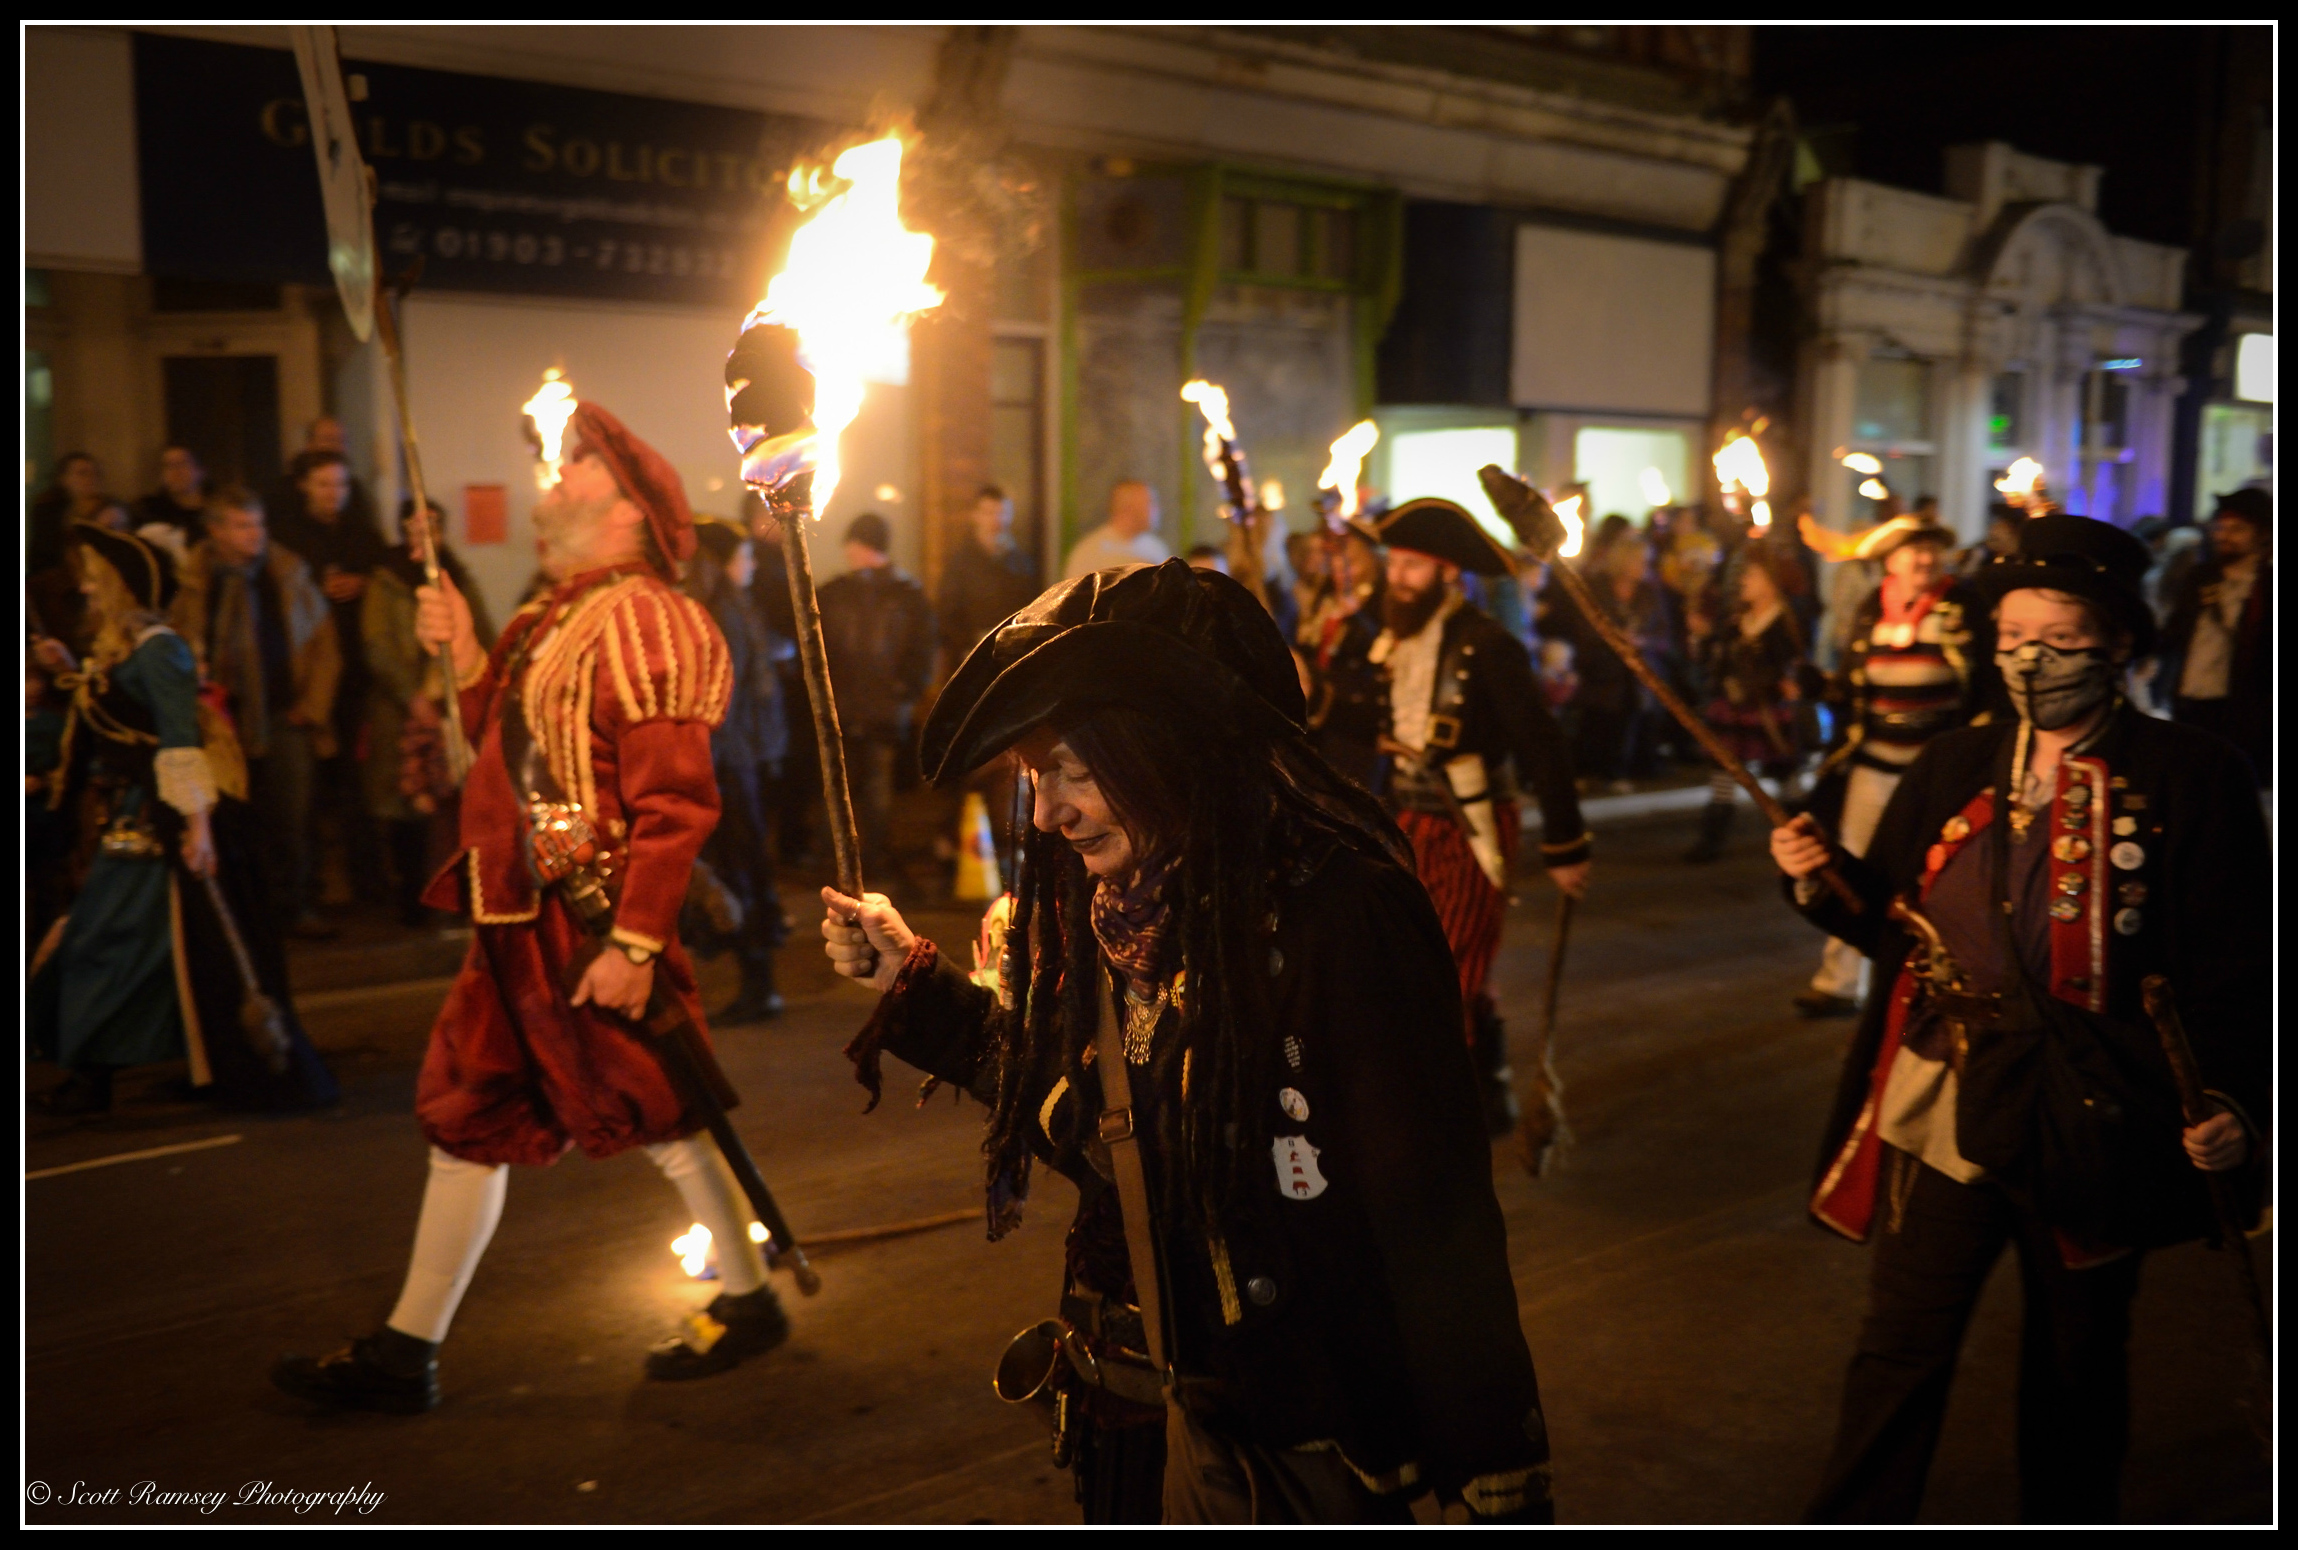 A member of the Eastbourne Bonfire Society dressed as a pirate holds a flaming torch as she walks through Littlehampton during the procession.